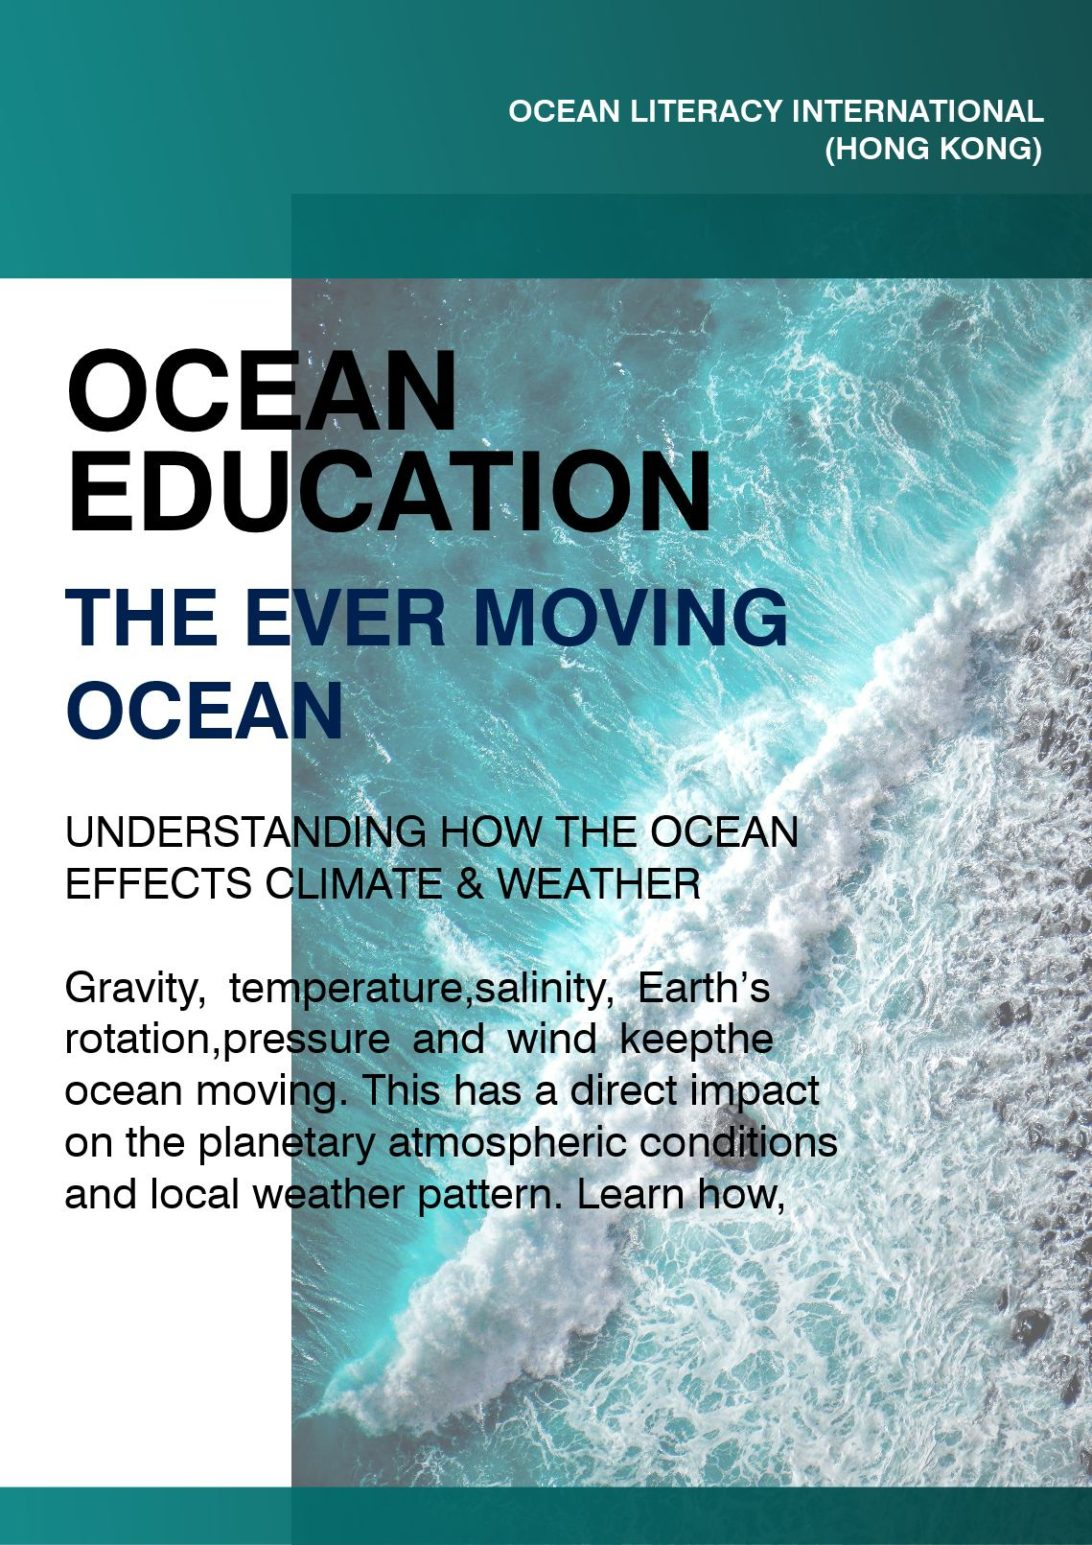 the ever moving ocean